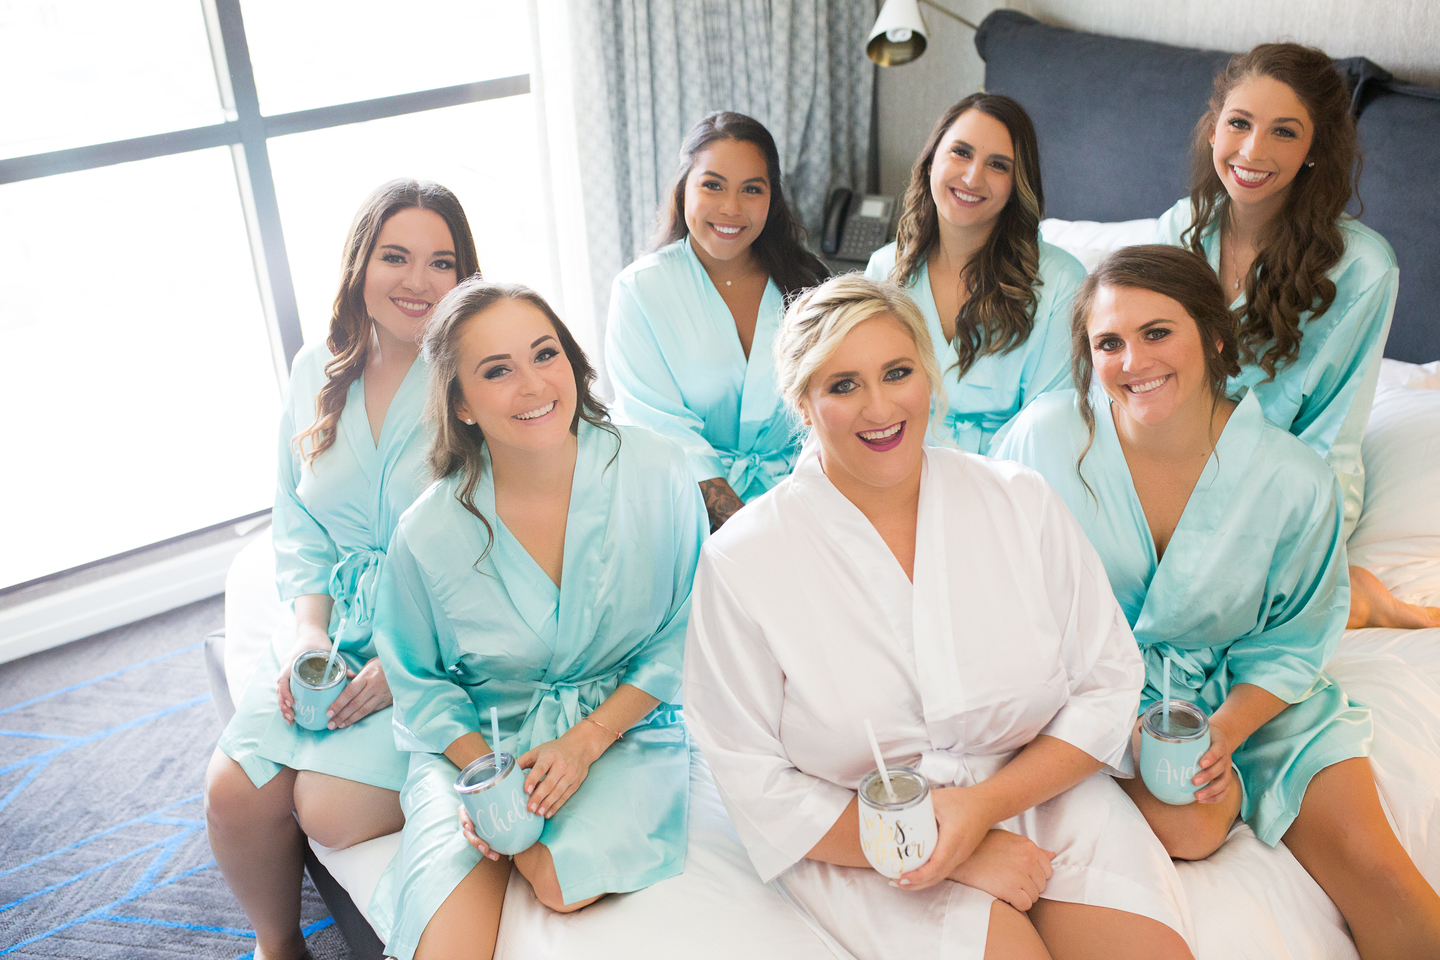 Bridal party photos: Charming & Fun Hutton Hotel Nashville Wedding